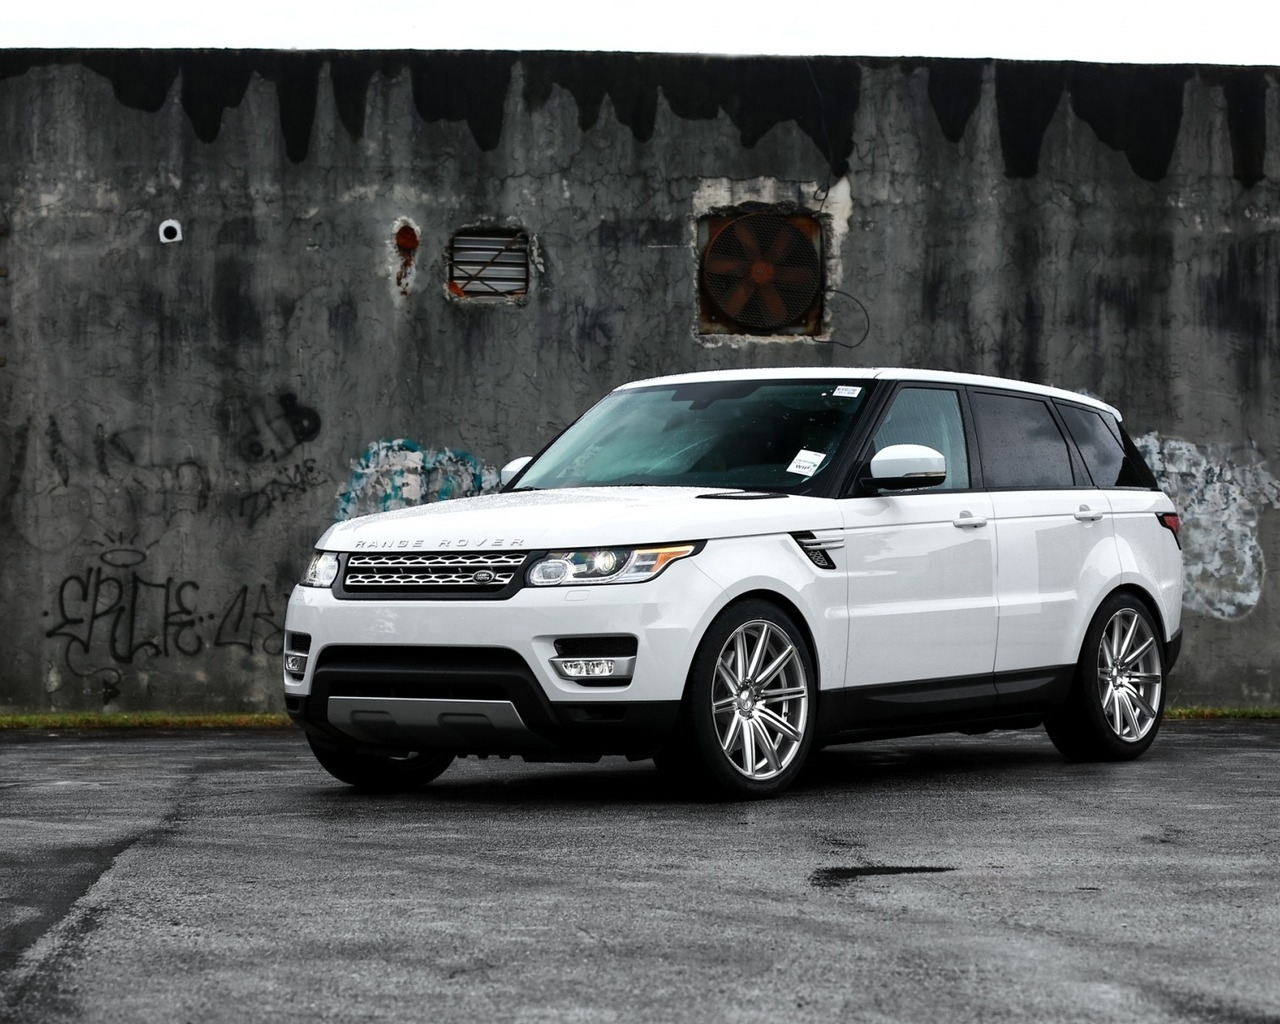 Gorgeous White Range Rover Sport for 1280 x 1024 resolution